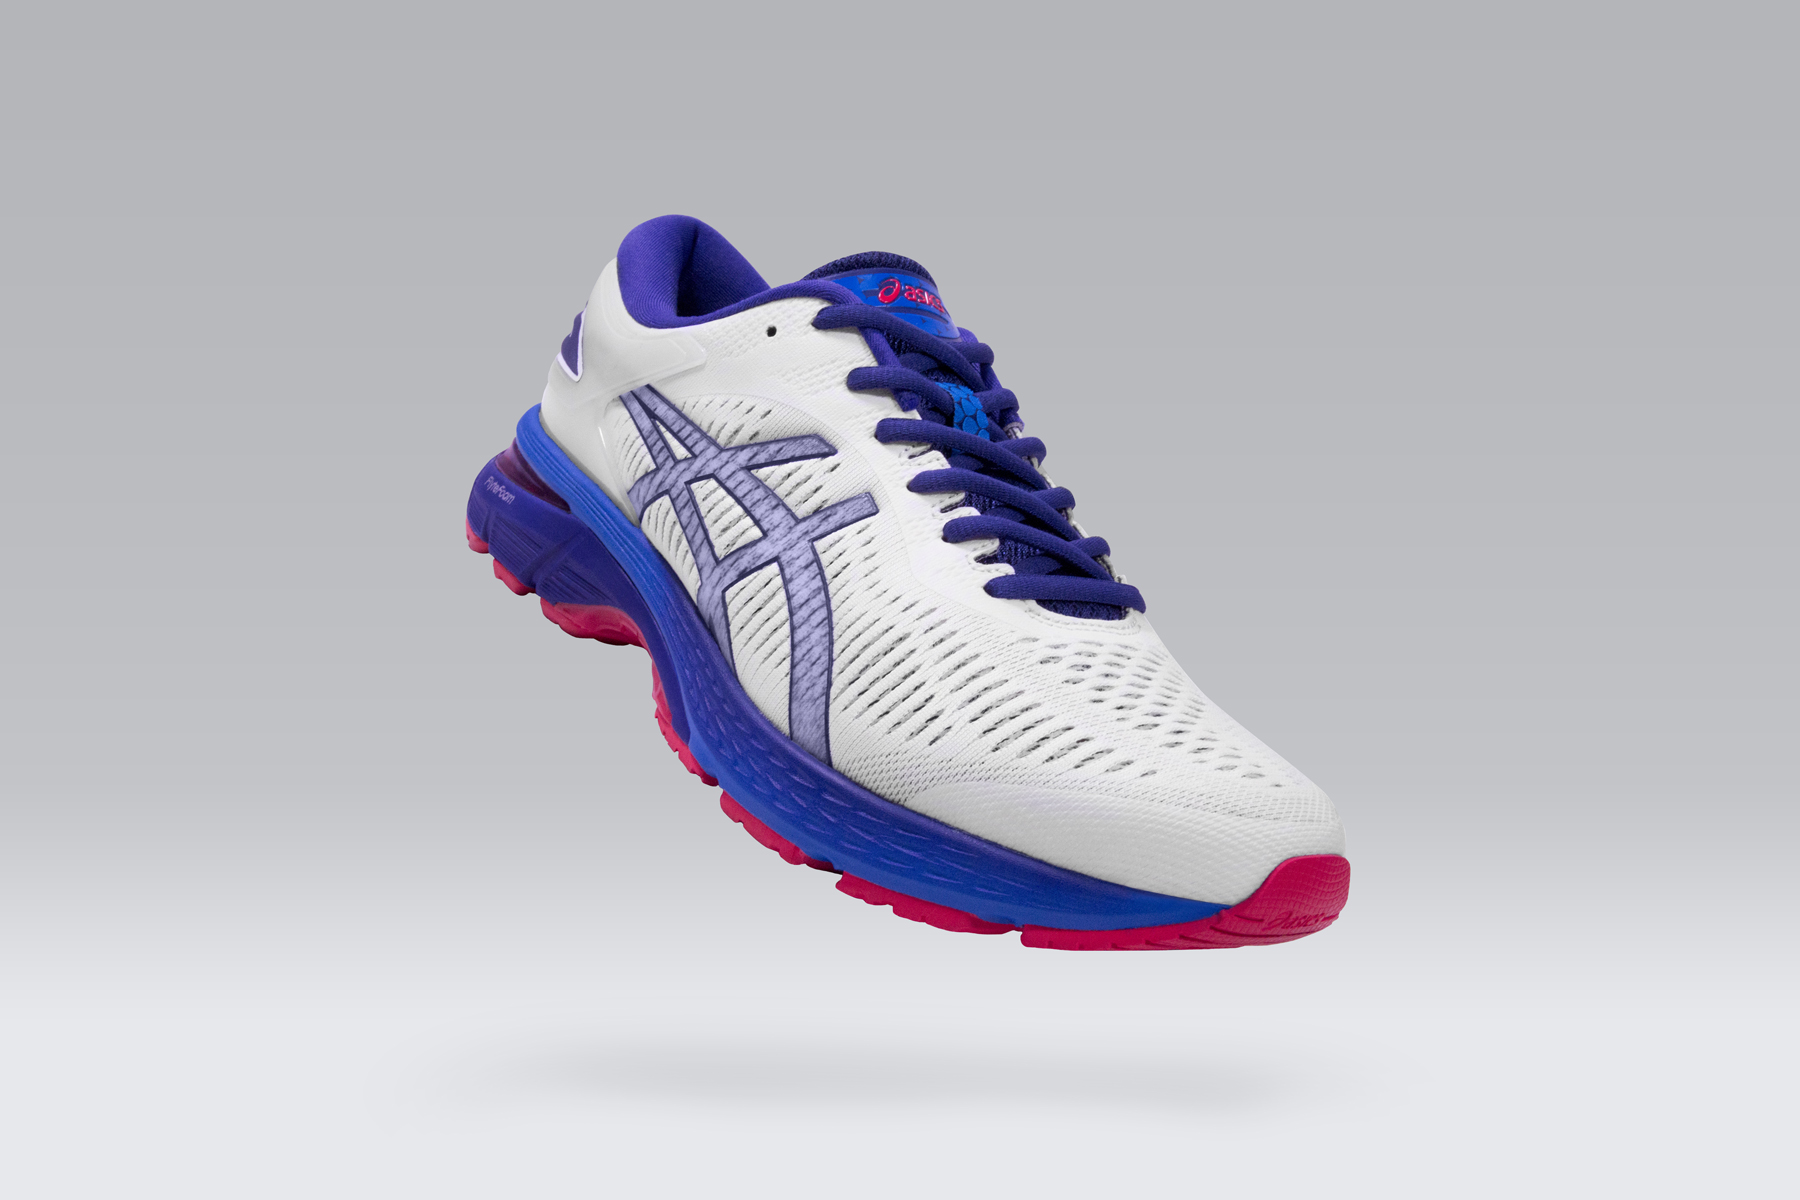 Converger Desaparecer alcanzar  INTRODUCING GEL-KAYANO 25: THE FIRST EVER SHOE TO FEATURE NEXT- GENERATION  HIGH PERFORMANCE MATERIAL CELLULOSE NANOFIBER | ASICS Global - The Official  Corporate Website for ASICS and Its Affiliates